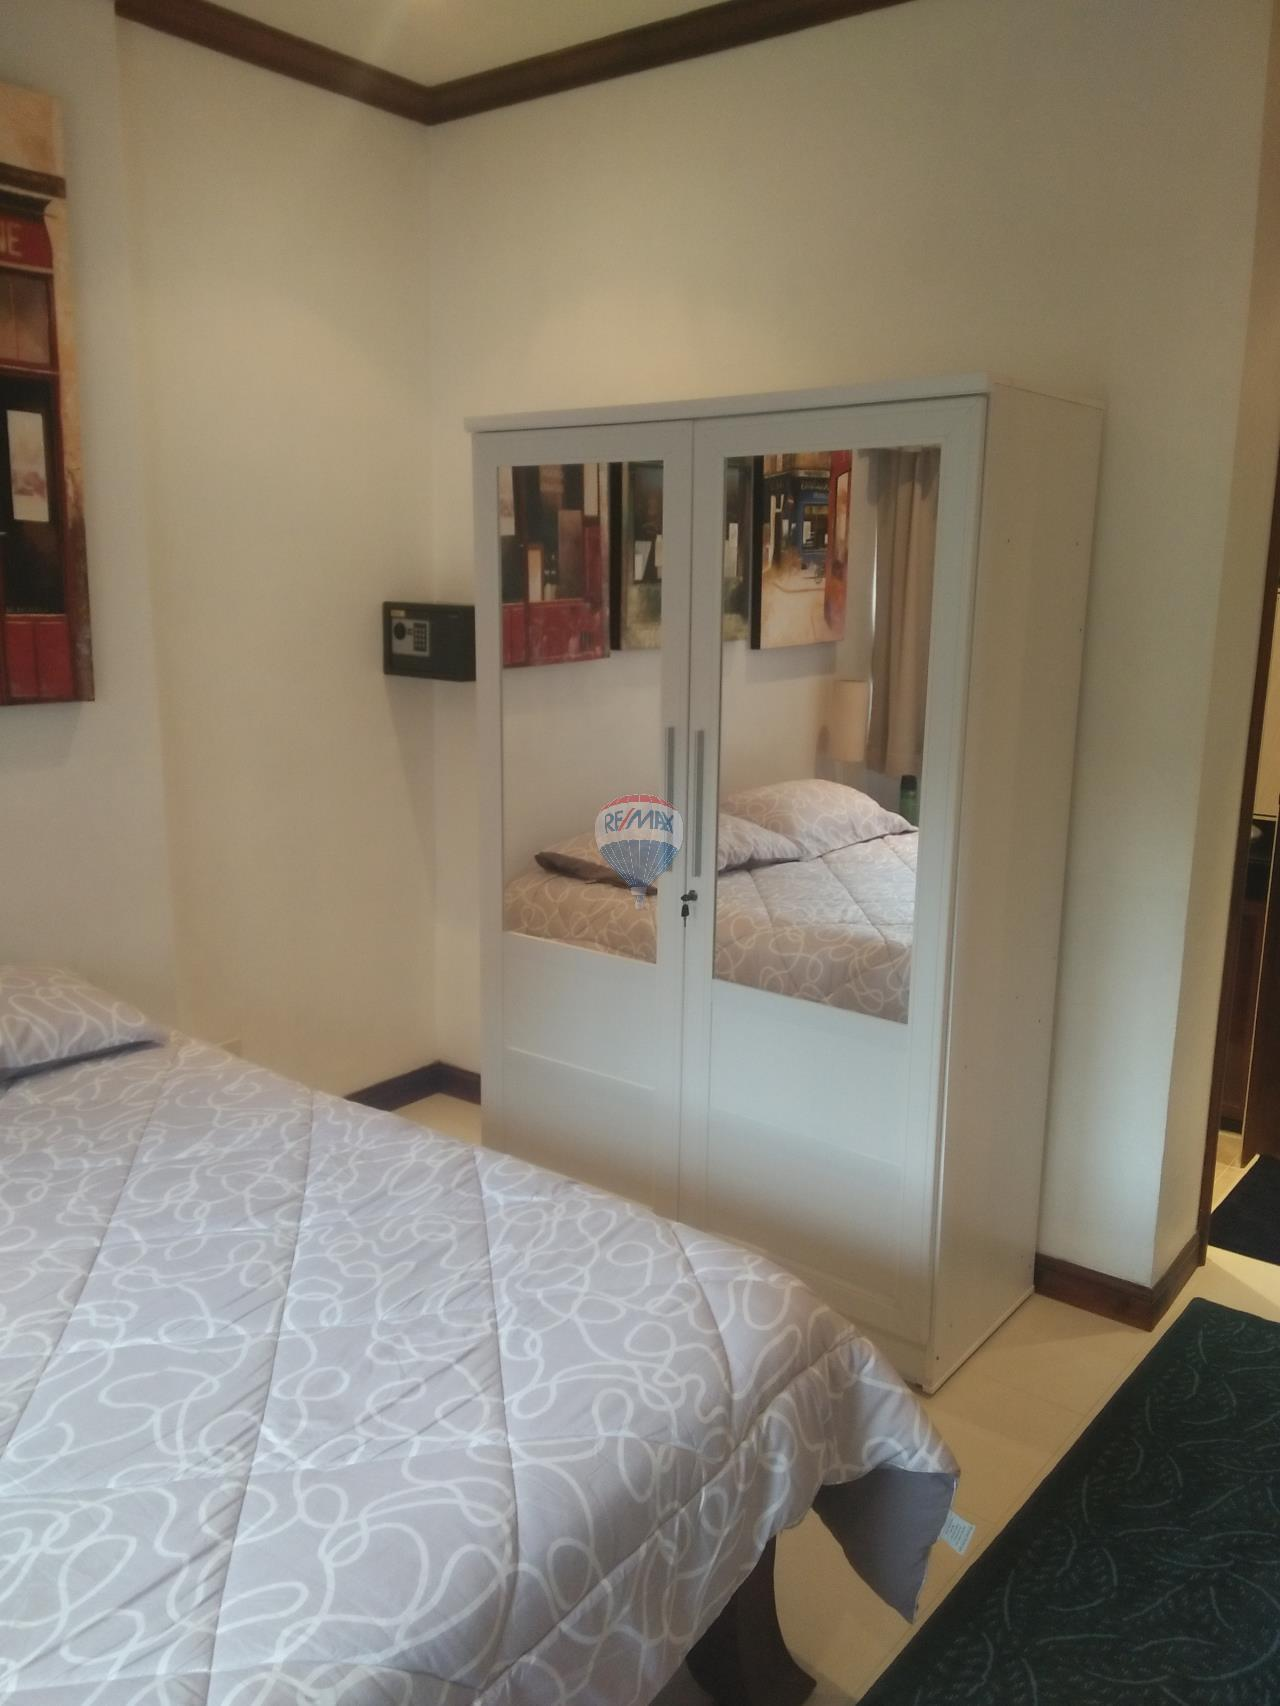 RE/MAX Top Properties Agency's Phuket,Patong Beach, 2 Bedrooms Condo For Rent 14